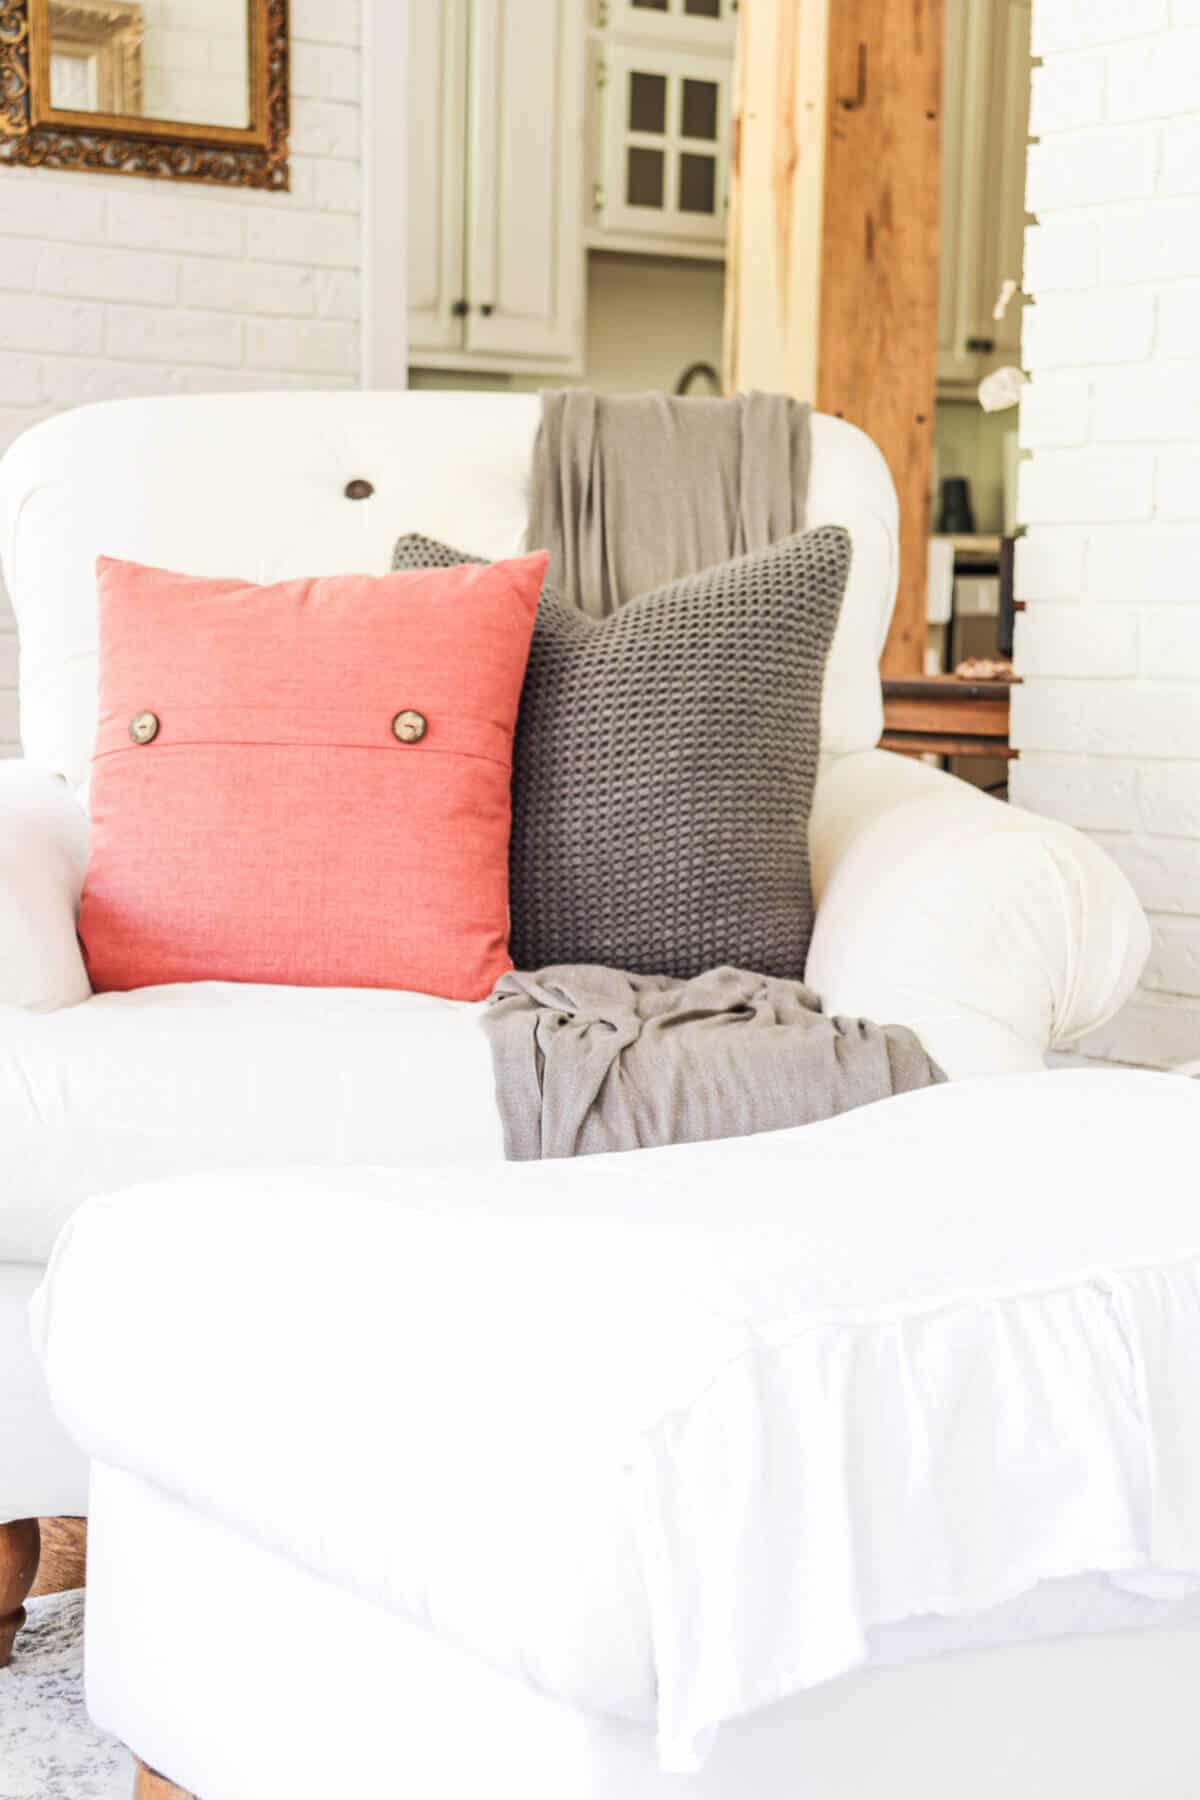 white armchair with a gray knit pillow, gray throw blanket and orange throw pillow with 2 wooden buttons.